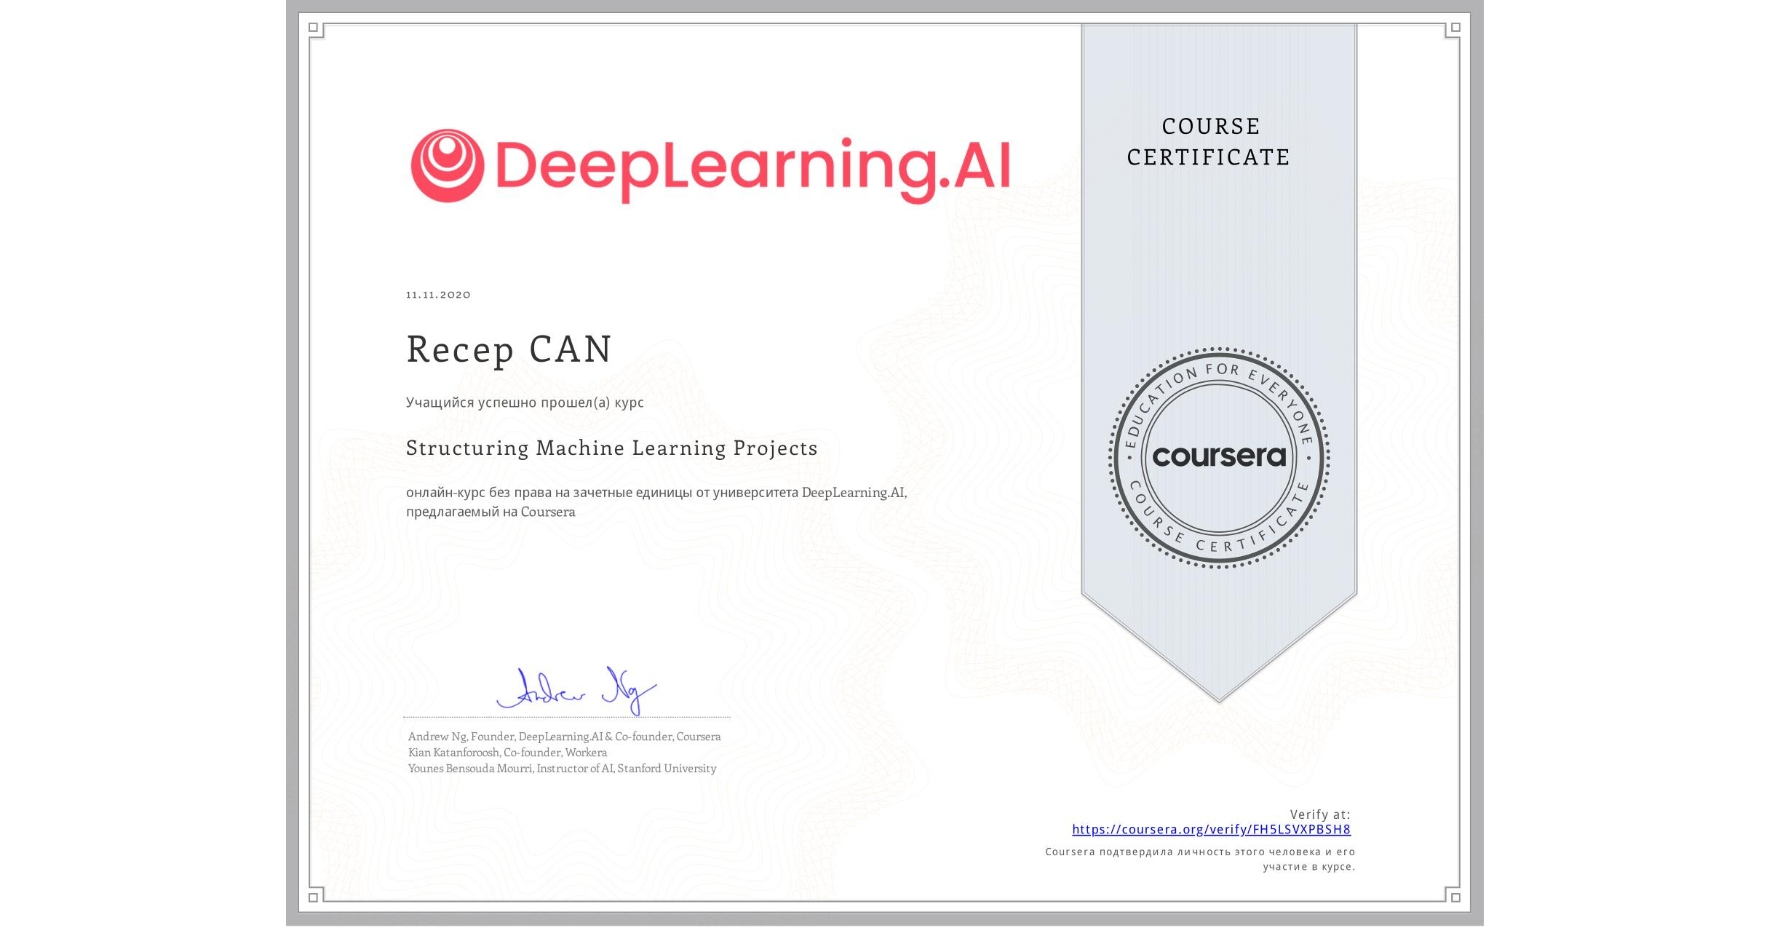 View certificate for Recep CAN, Structuring Machine Learning Projects, an online non-credit course authorized by DeepLearning.AI and offered through Coursera